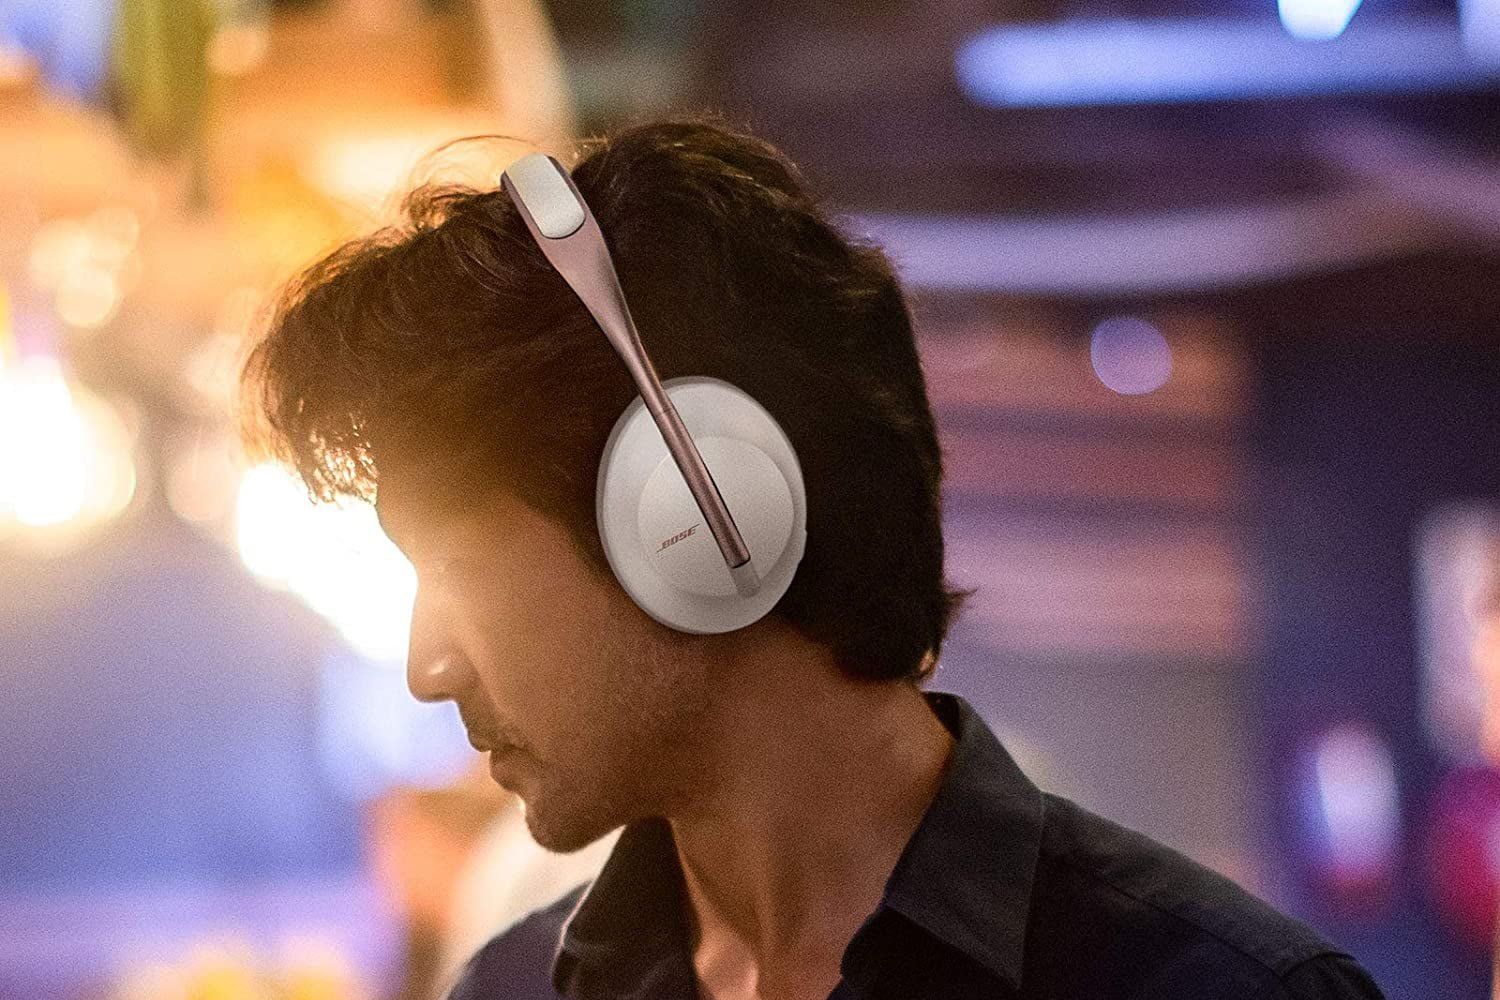 The best Bose 700 headphone deal is at Amazon right now for Prime Day